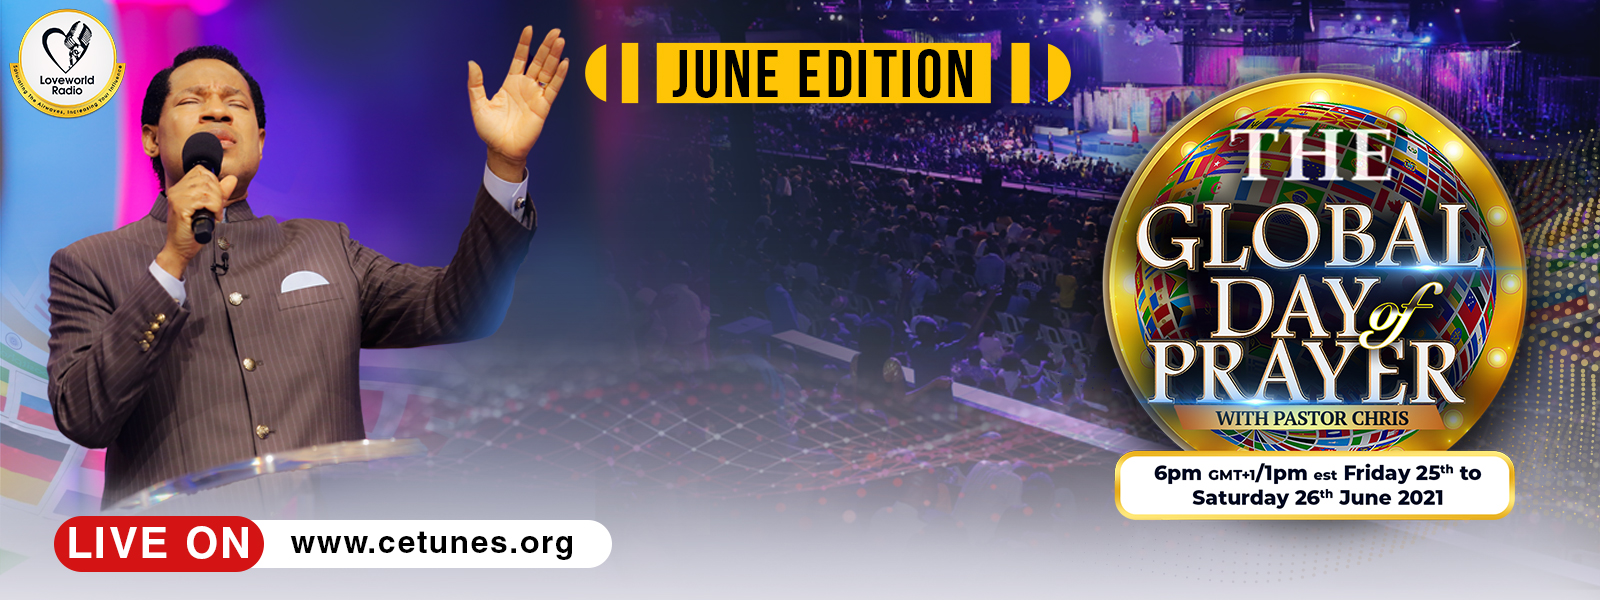 GLOBAL DAY OF PRAYER WITH PASTOR CHRIS (JUNE EDITION)